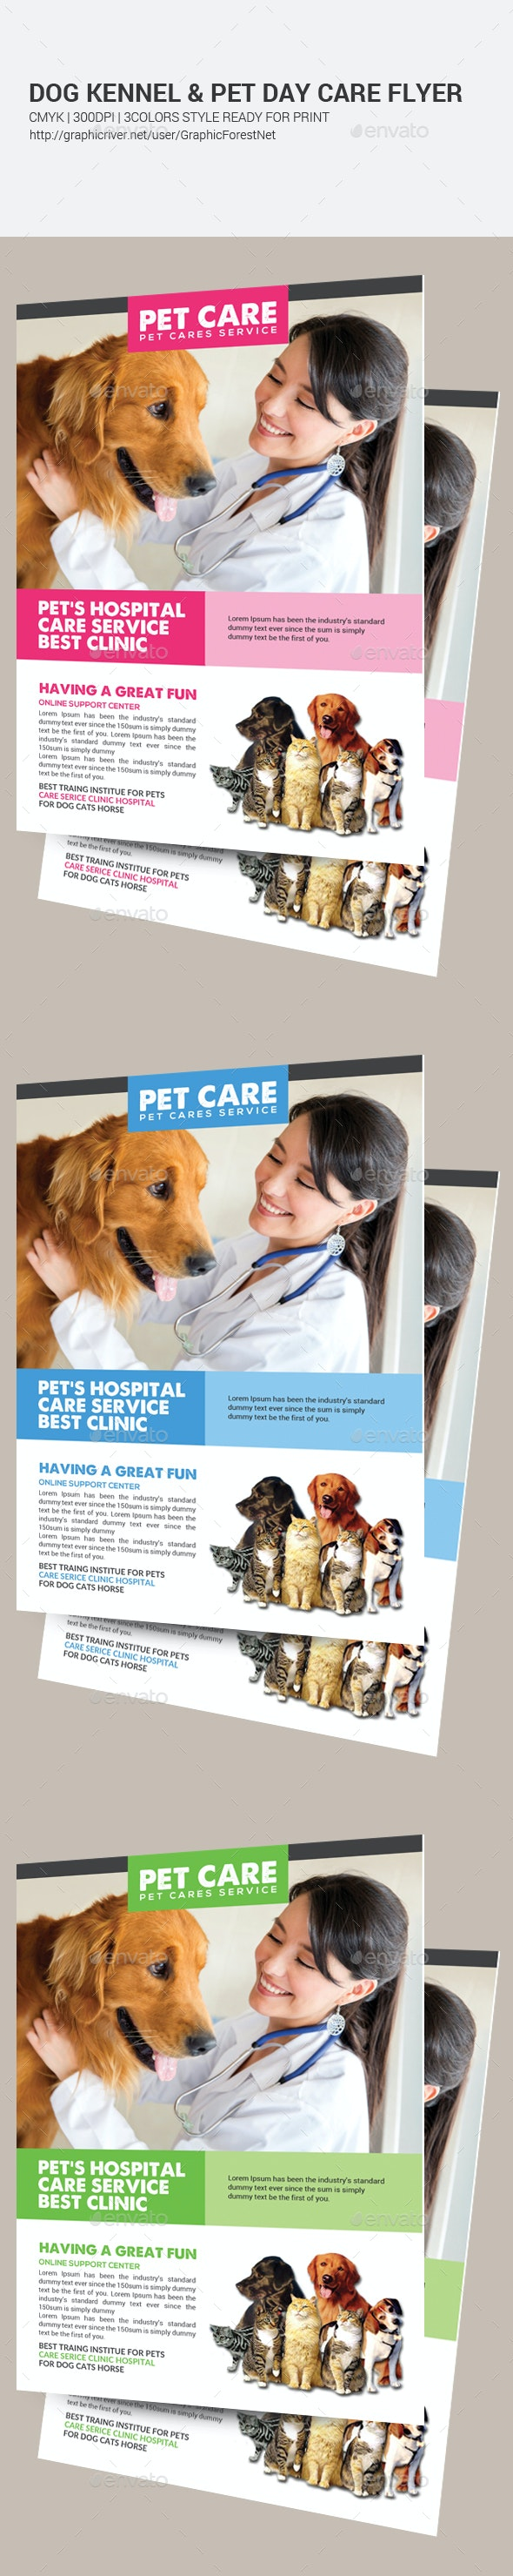 Dog Kennel & Pet Day Care Flyer Template  - Corporate Flyers